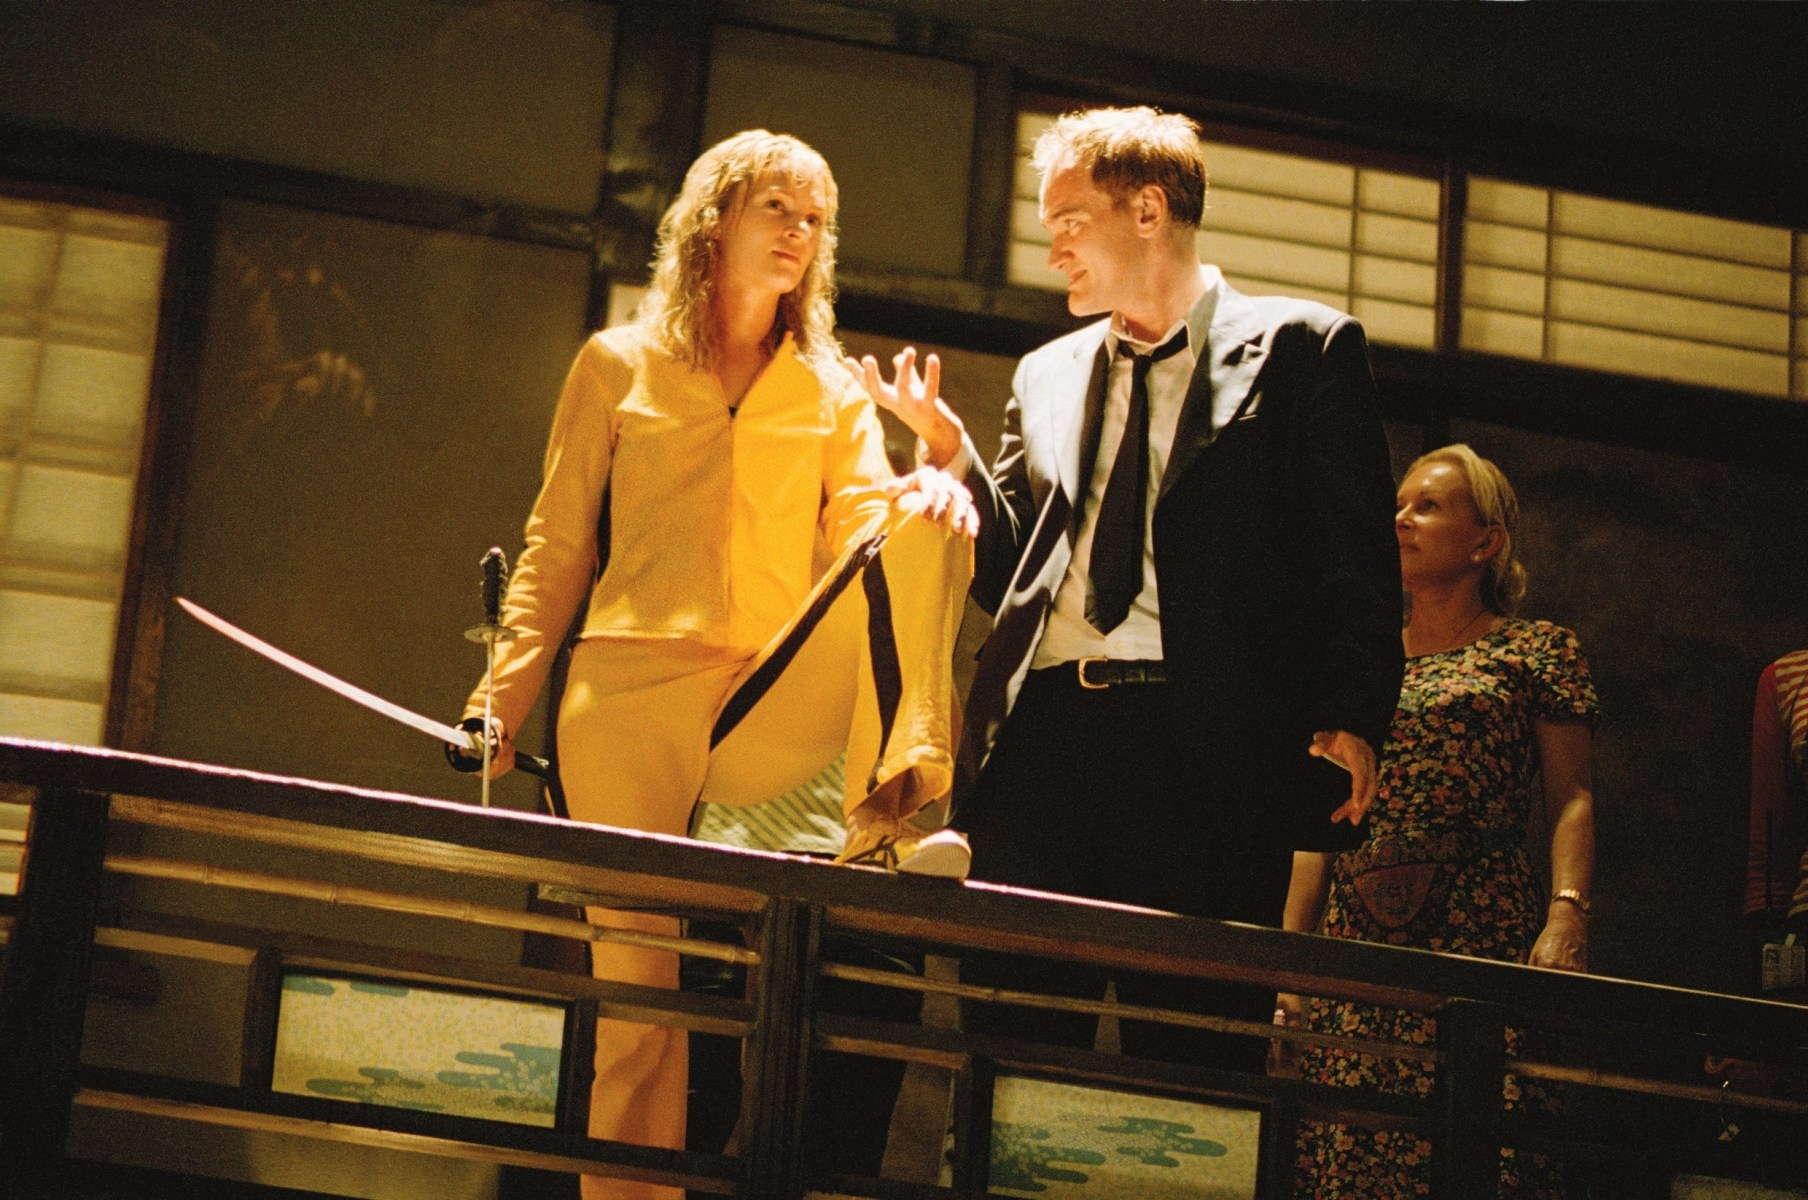 Kill Bill: Vol. 1 Behind the Scenes Photos & Tech Specs